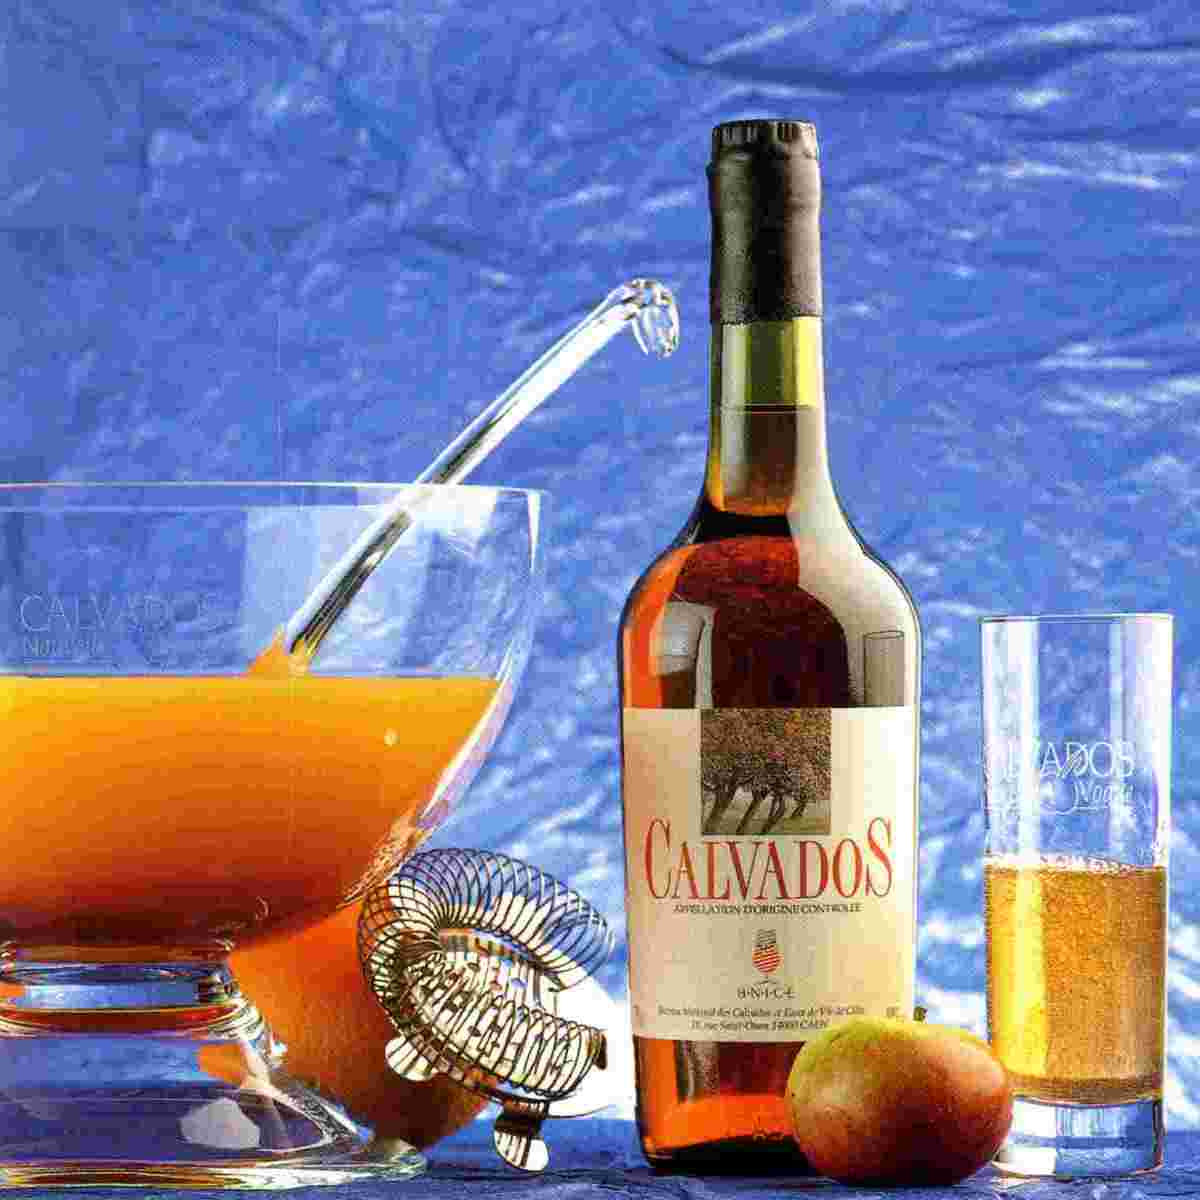 French Calvados Brandy